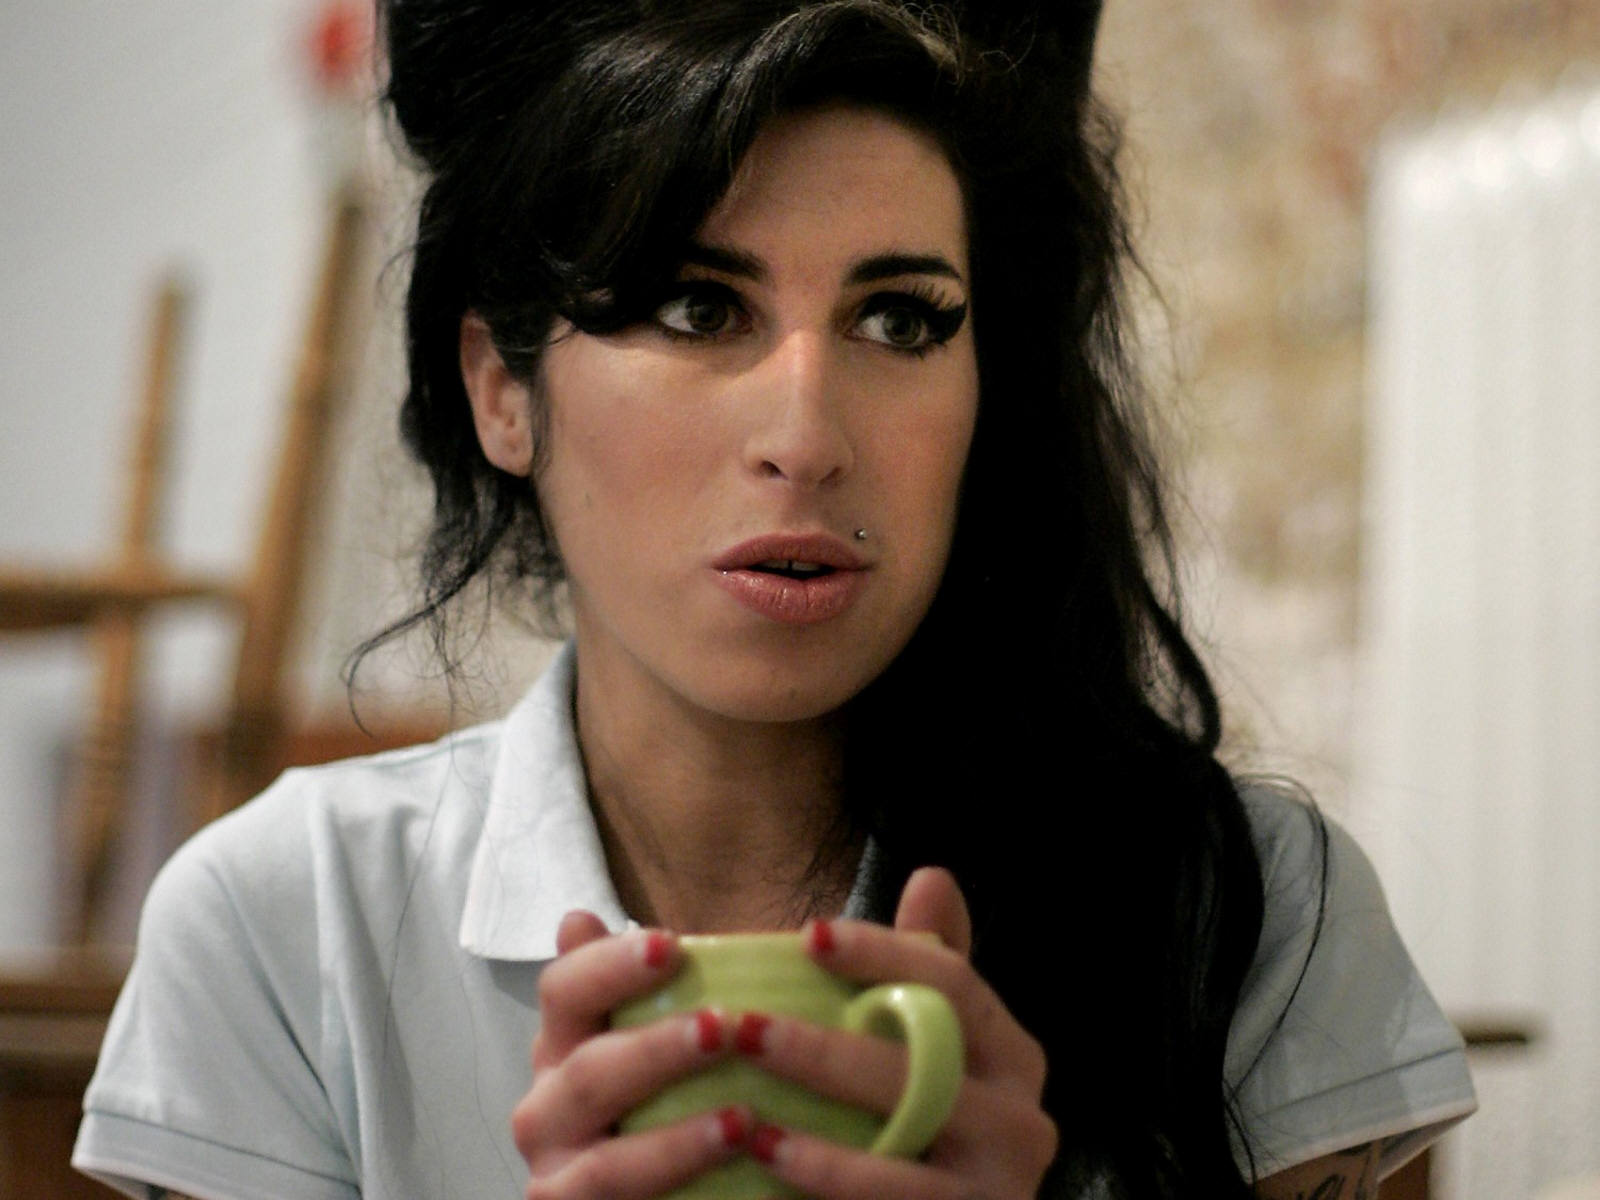 amy winehouse computer wallpaper 52988